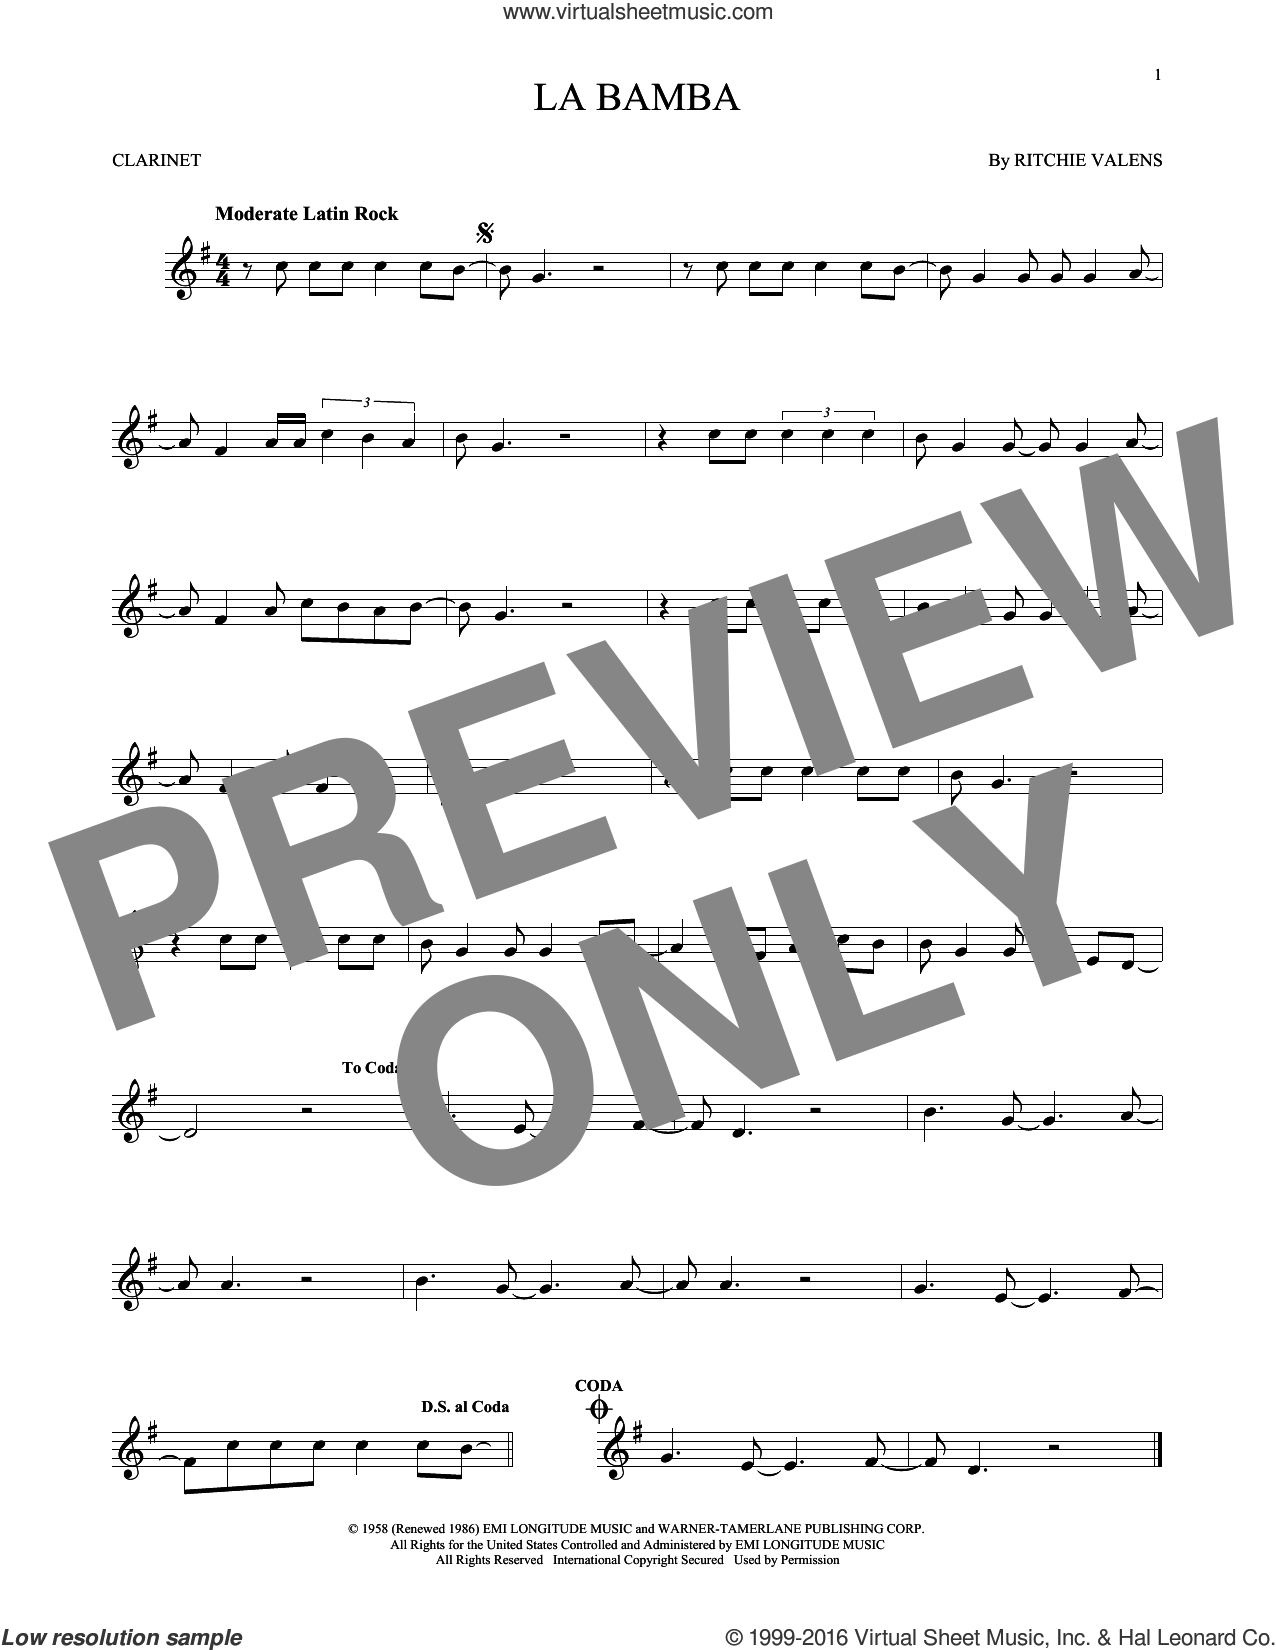 La Bamba sheet music for clarinet solo by Ritchie Valens and Los Lobos, intermediate skill level